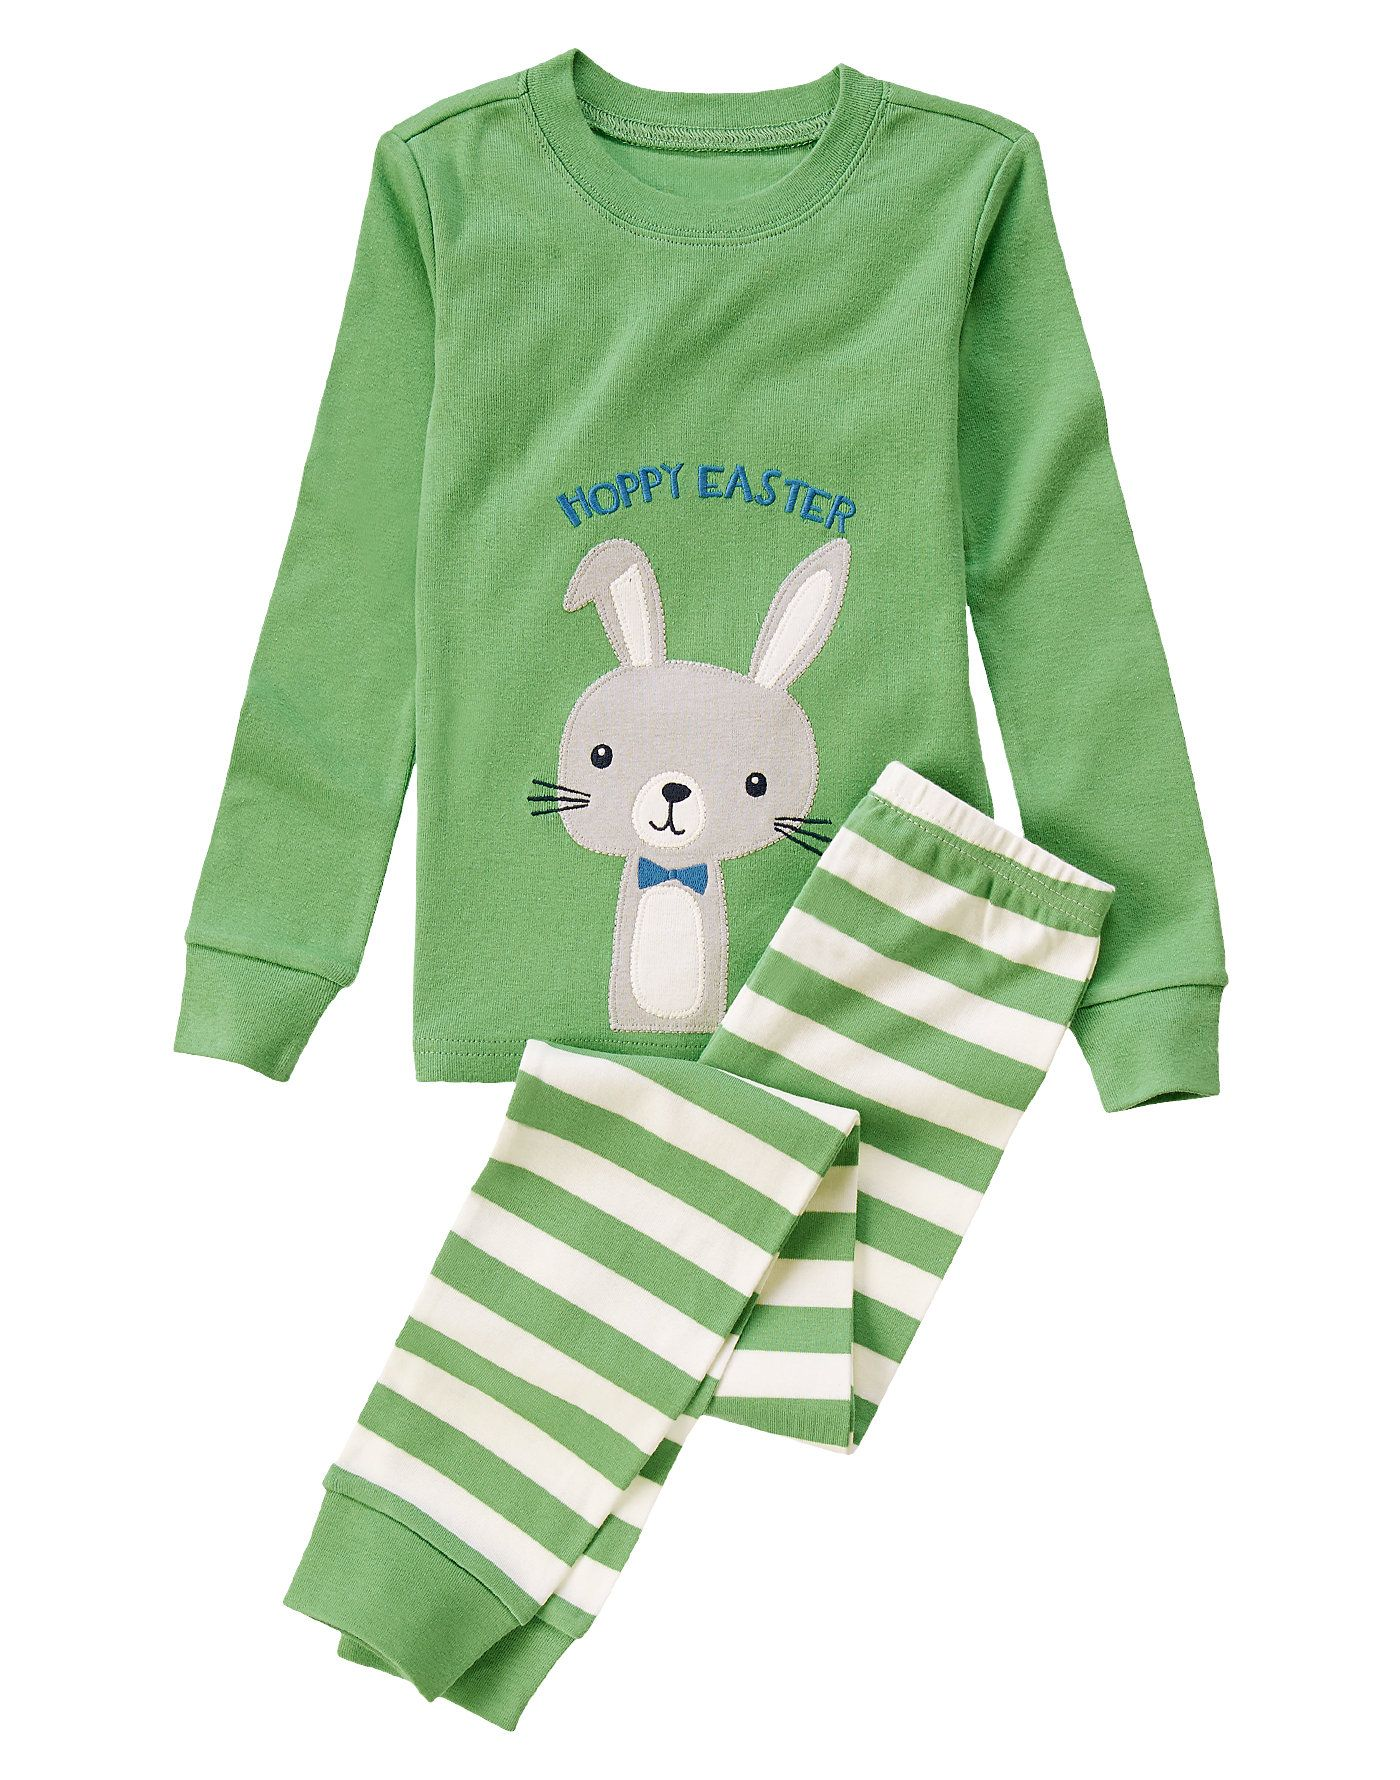 Hoppy Easter Two-Piece Gymmies® at Gymboree size 3 easter jammies :D